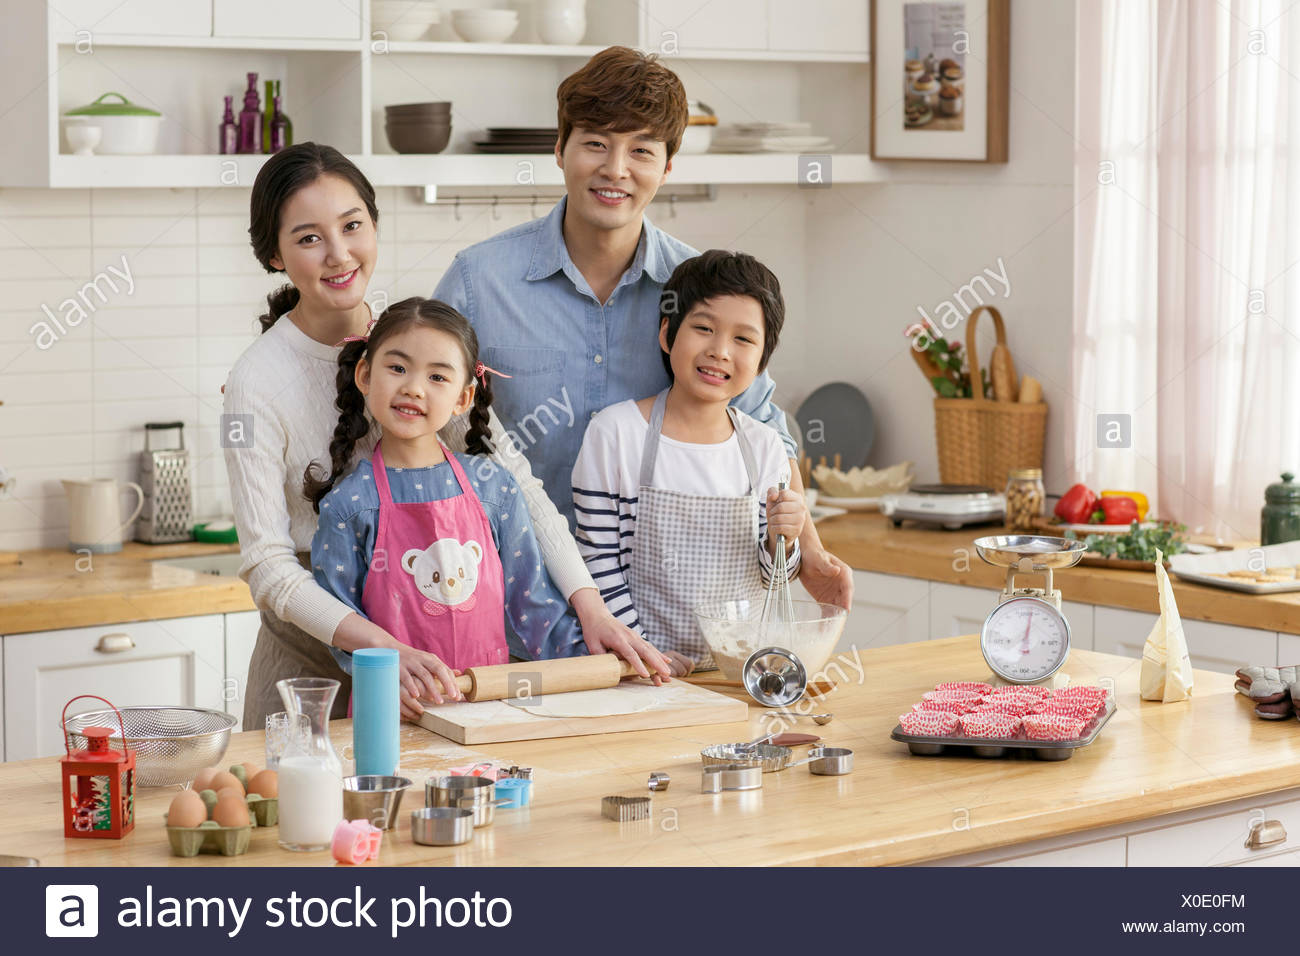 Cuisine familiale harmonieuse together in kitchen Photo Stock